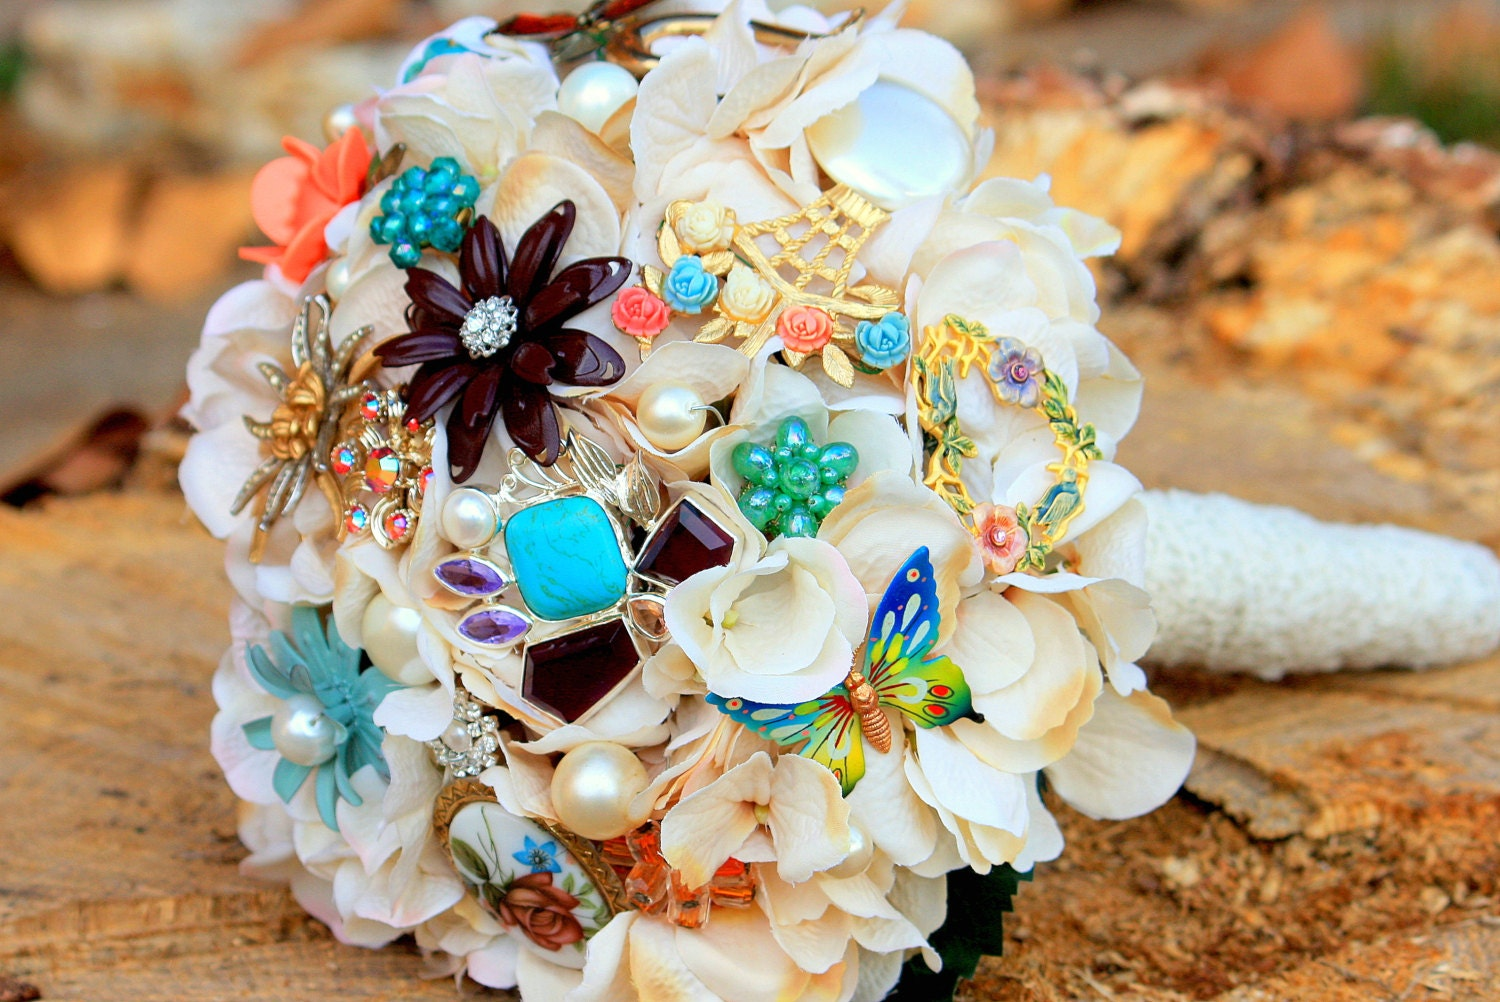 Vintage Jewellery Wedding Bouquets : Vintage lace jewelry bridal pearl brooch bouquet by